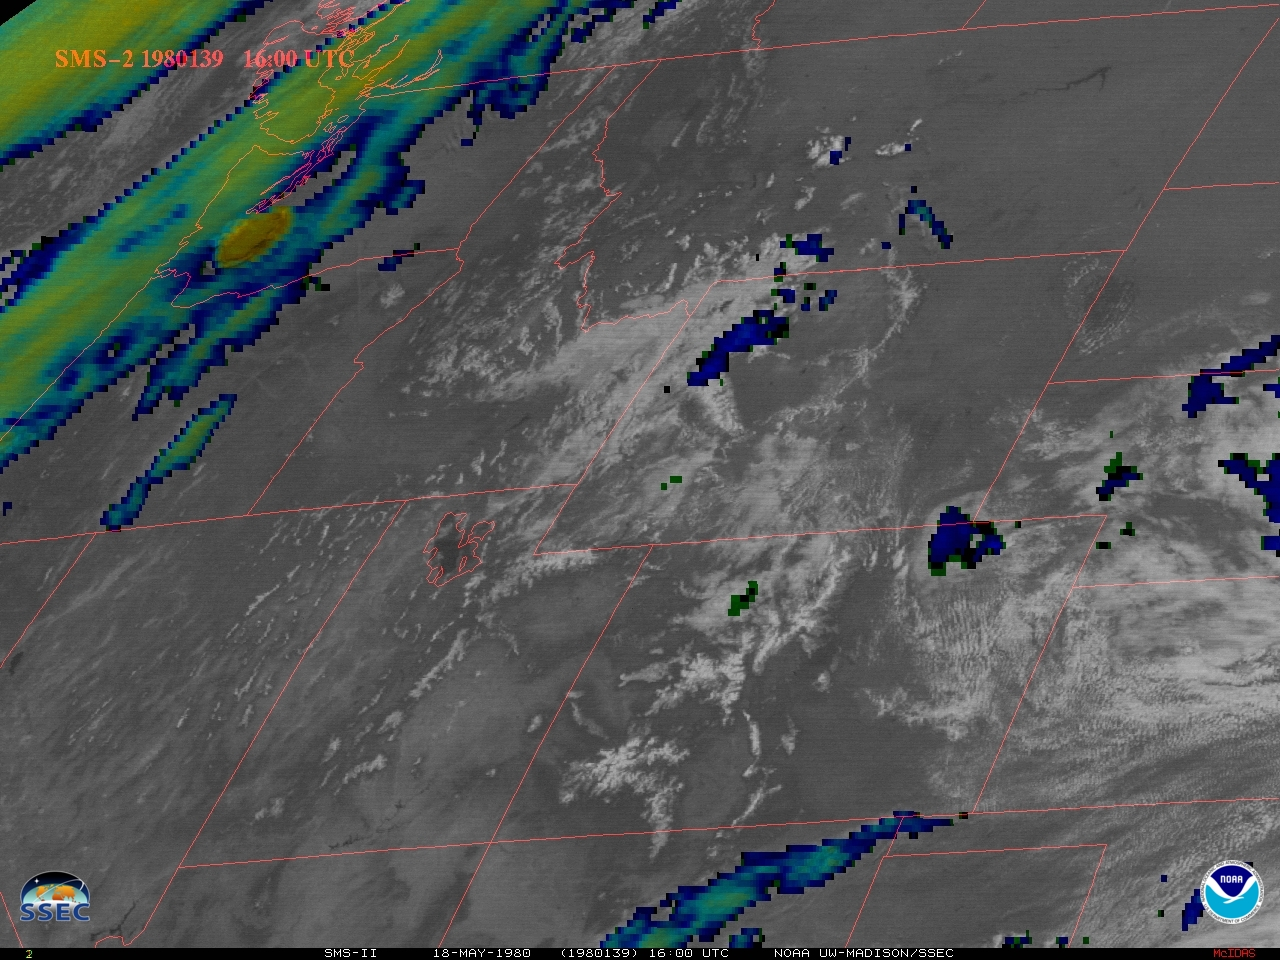 NASA SMS-2 Visible/Infrared Sandwich RGB images (credit: Tim Schmit, ASPB/CIMSS) [click to play MP4 animation]